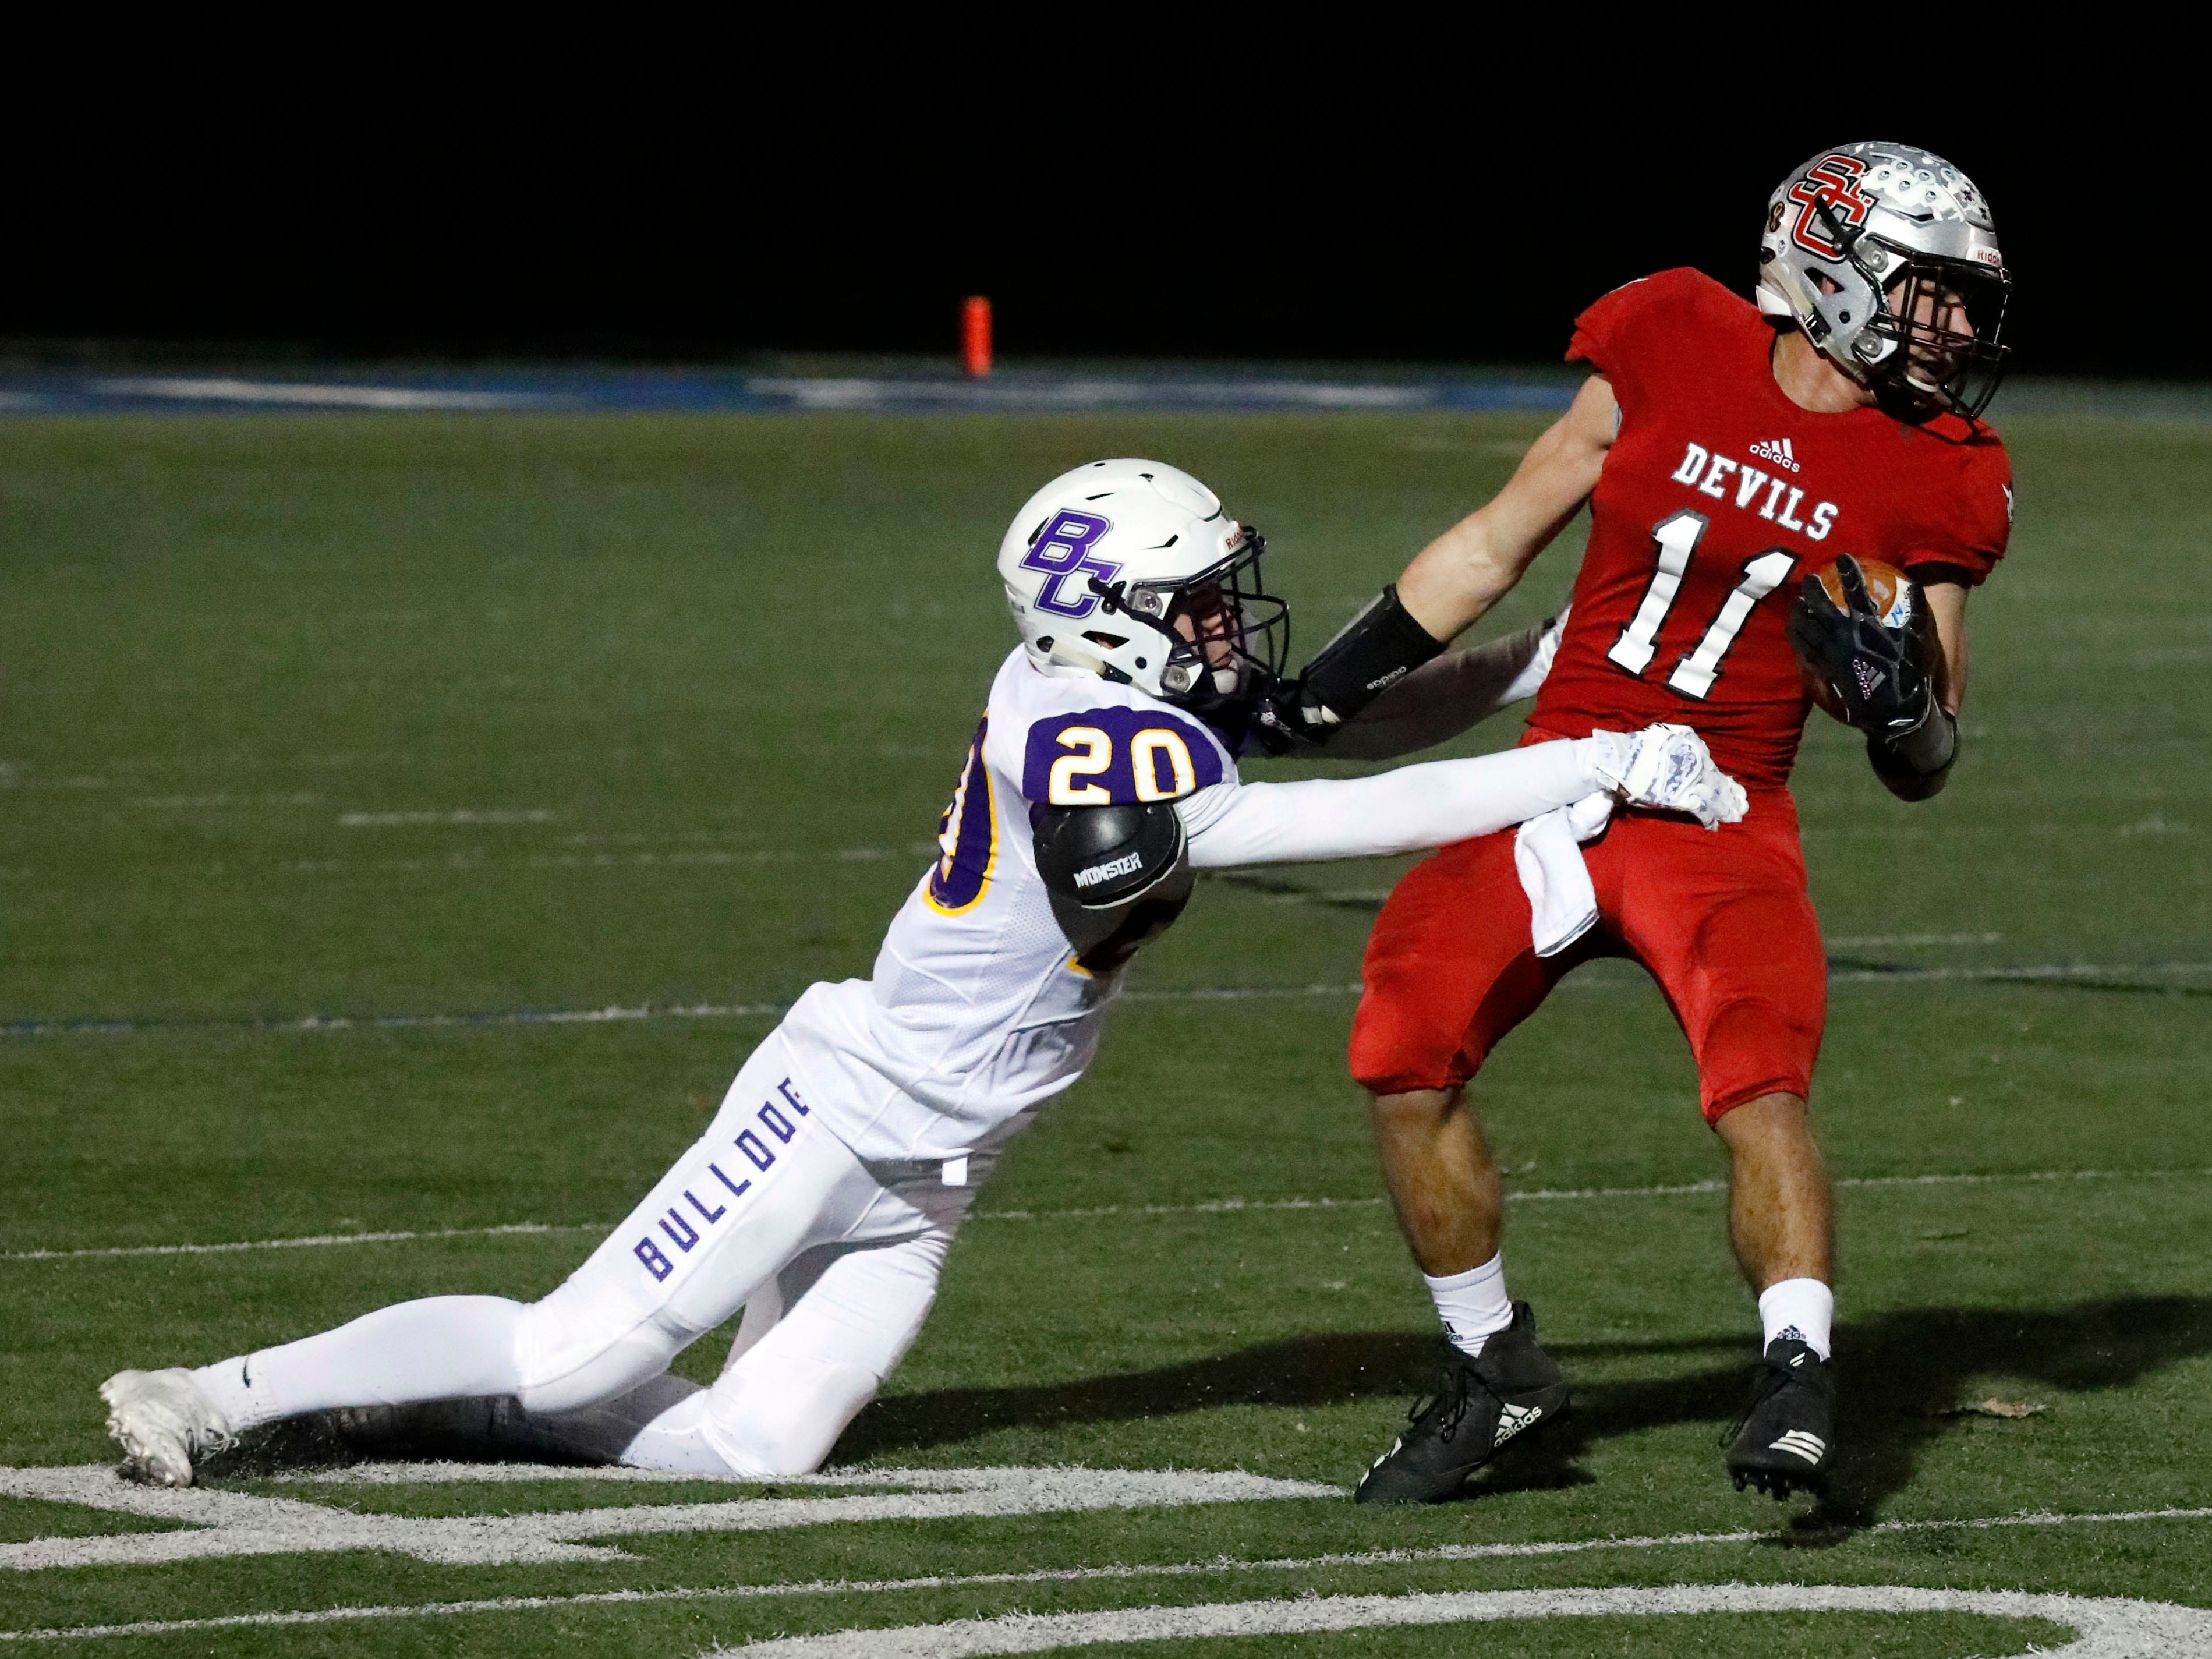 St. Clairsville's Kyle Storer tries to break free of a tackle from Bloom-Carroll's Gavin Powers Saturday night, Nov. 10, 2018, at Zanesville High School in Zanesville. The Bulldogs lost the regional semifinal game to St. Clairsville 41-14.